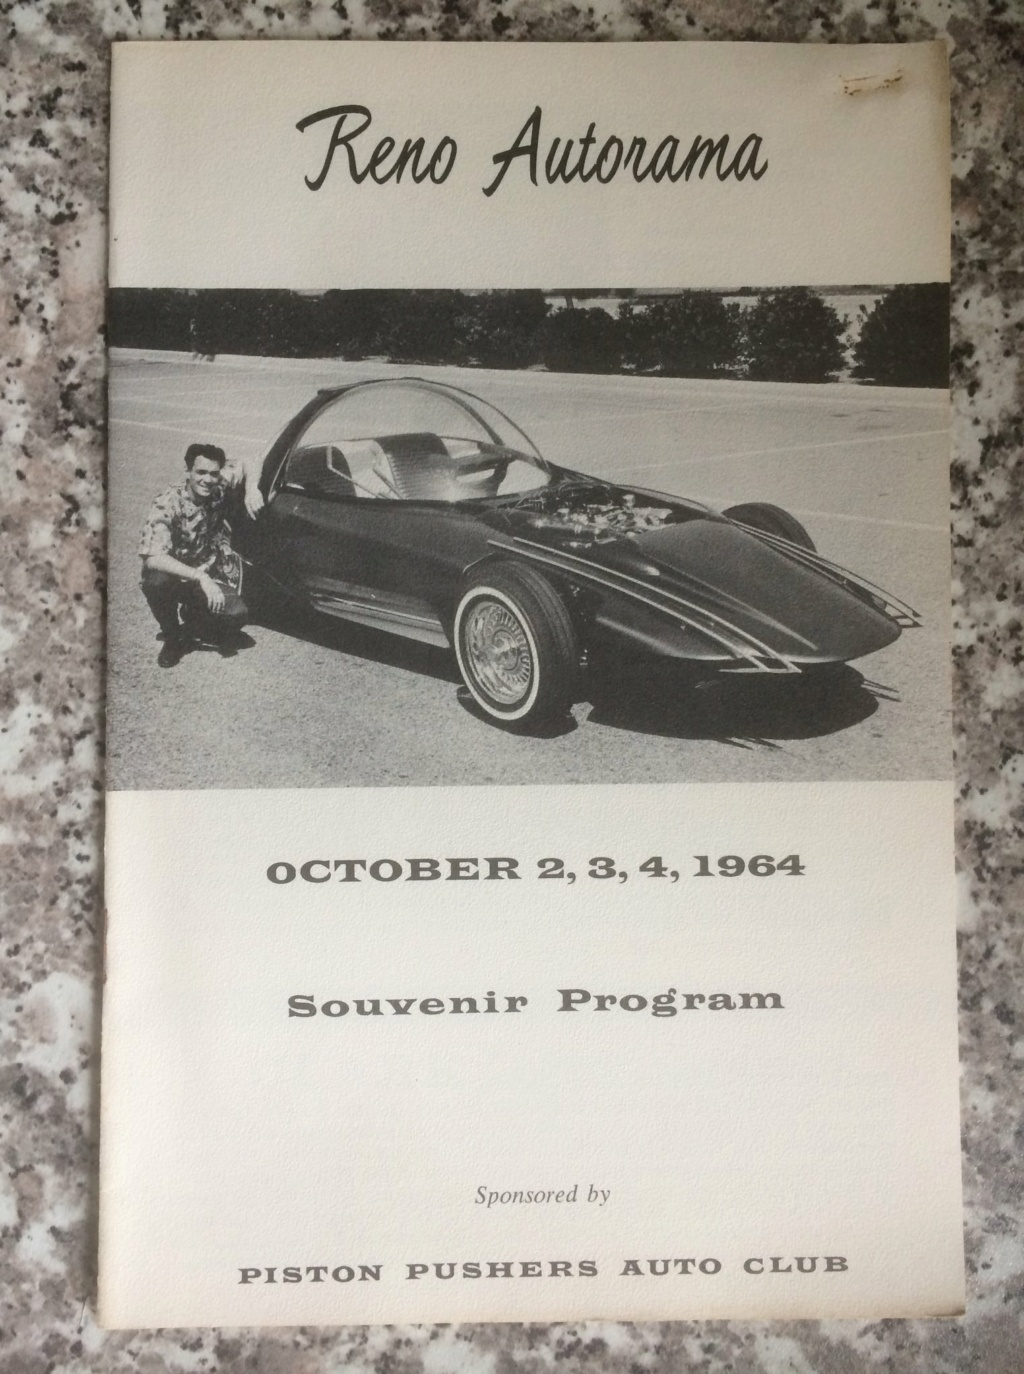 Vintage Car Show pics (50s, 60s and 70s) - Page 23 12252510